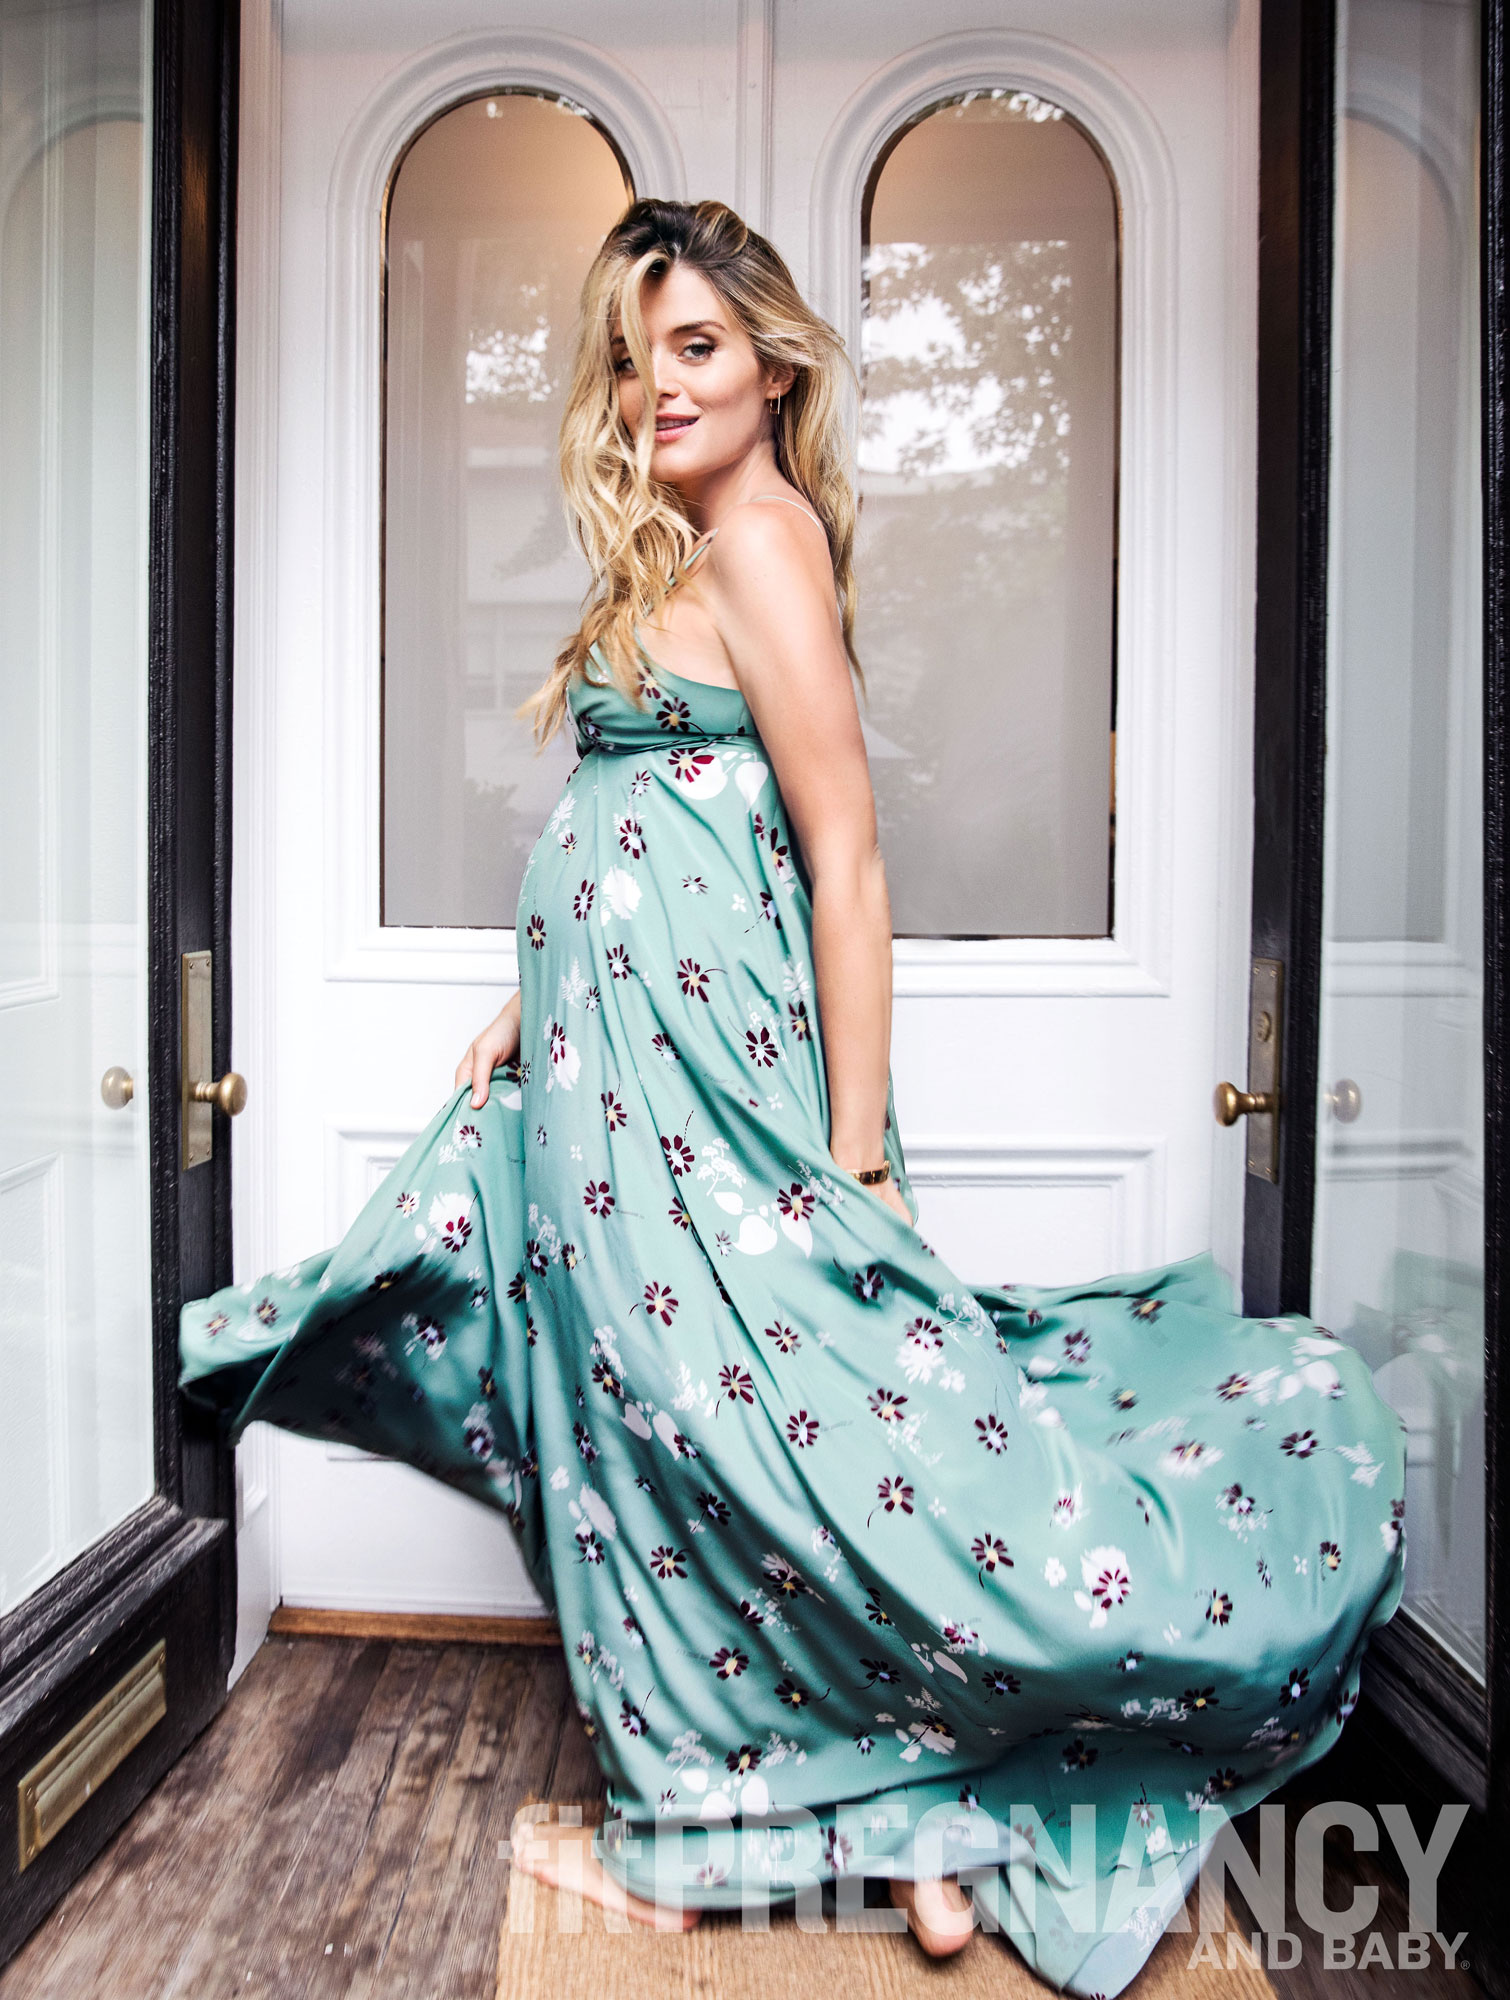 Daphne Oz Fit Pregnancy and Baby interviewCredit: Fit Pregnancy and Baby